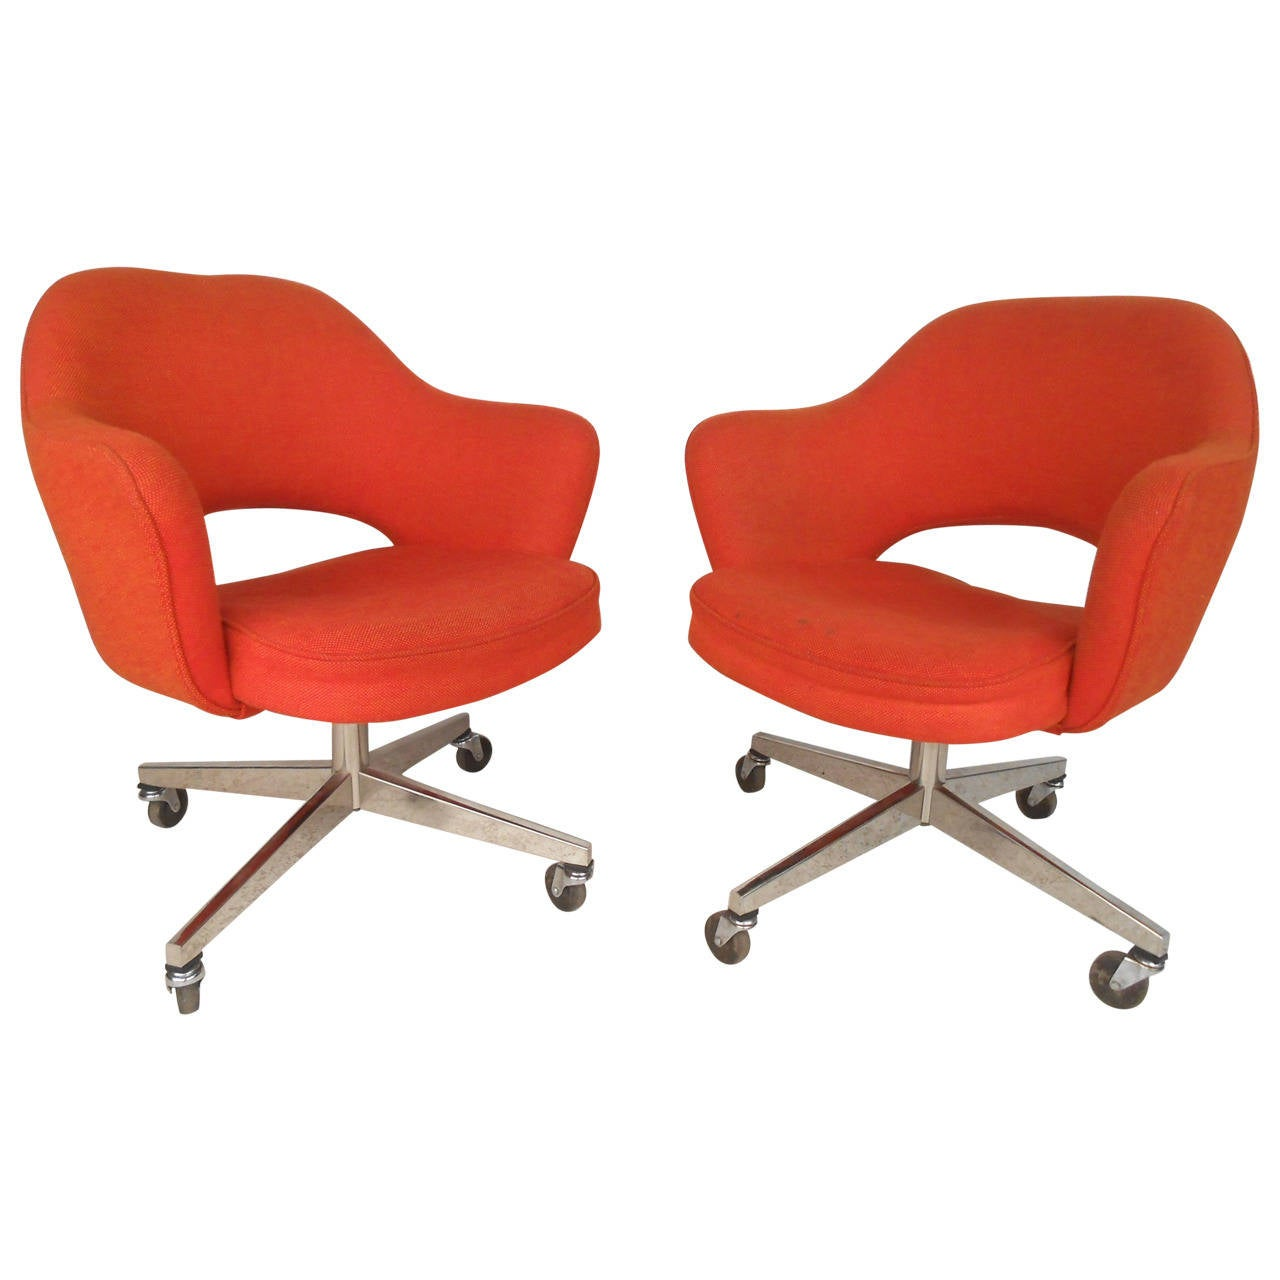 Eero Saarinen Designed Rolling Chairs For Knoll For Sale